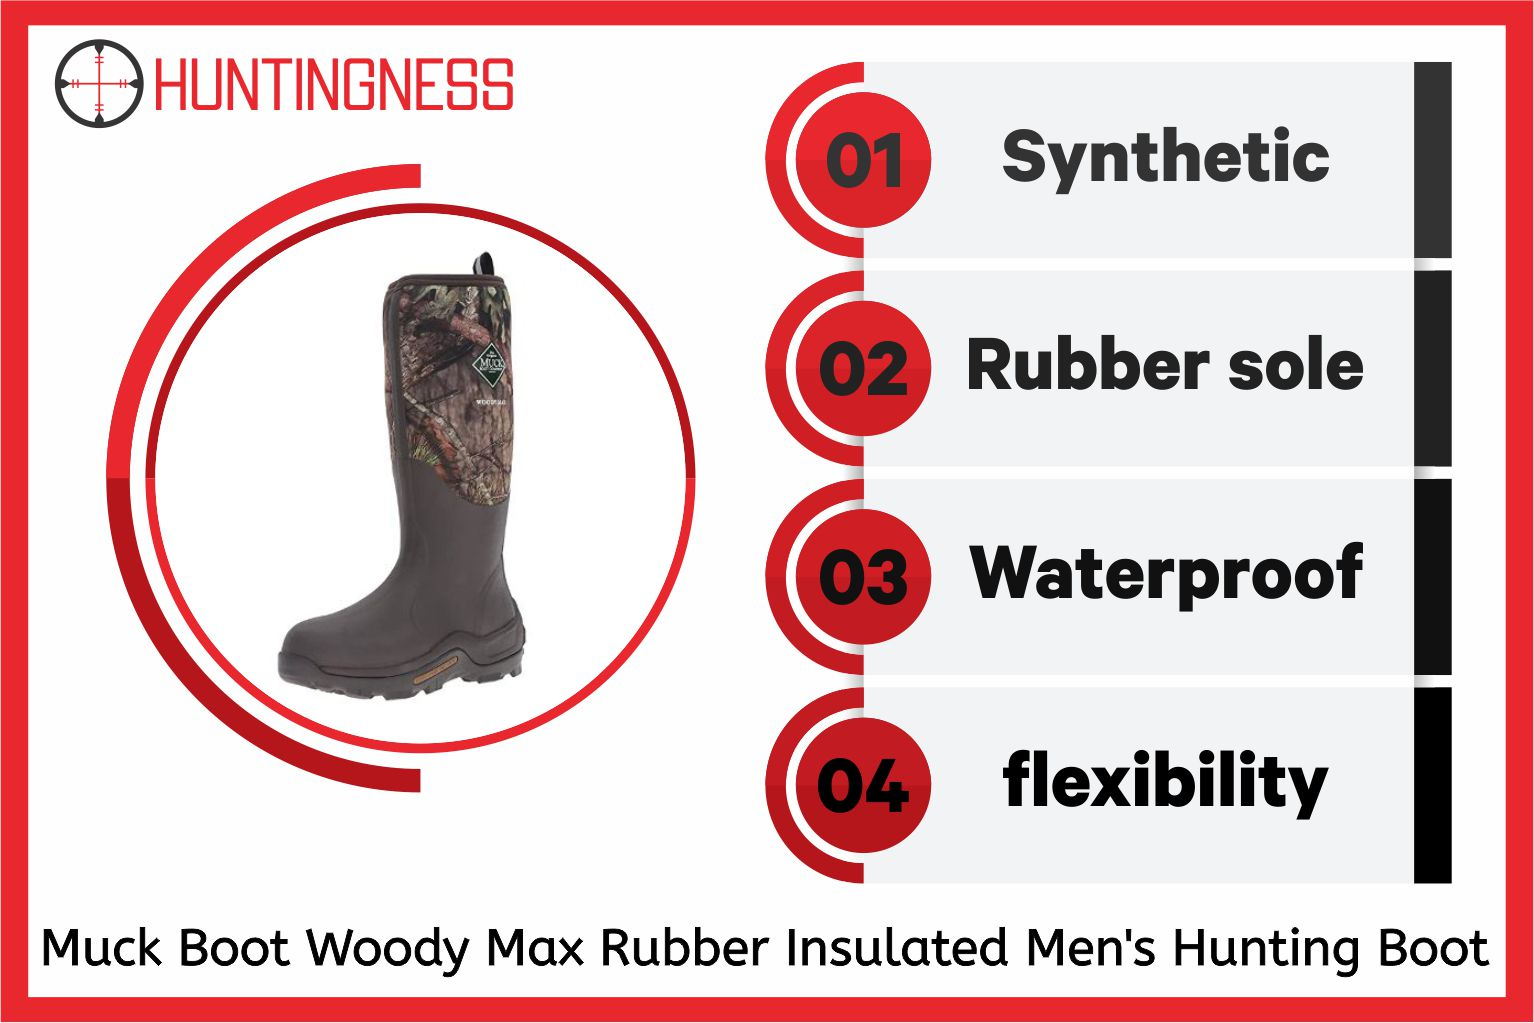 Muck Boot Woody Max Rubber Insulated Men's Hunting Boot infographic